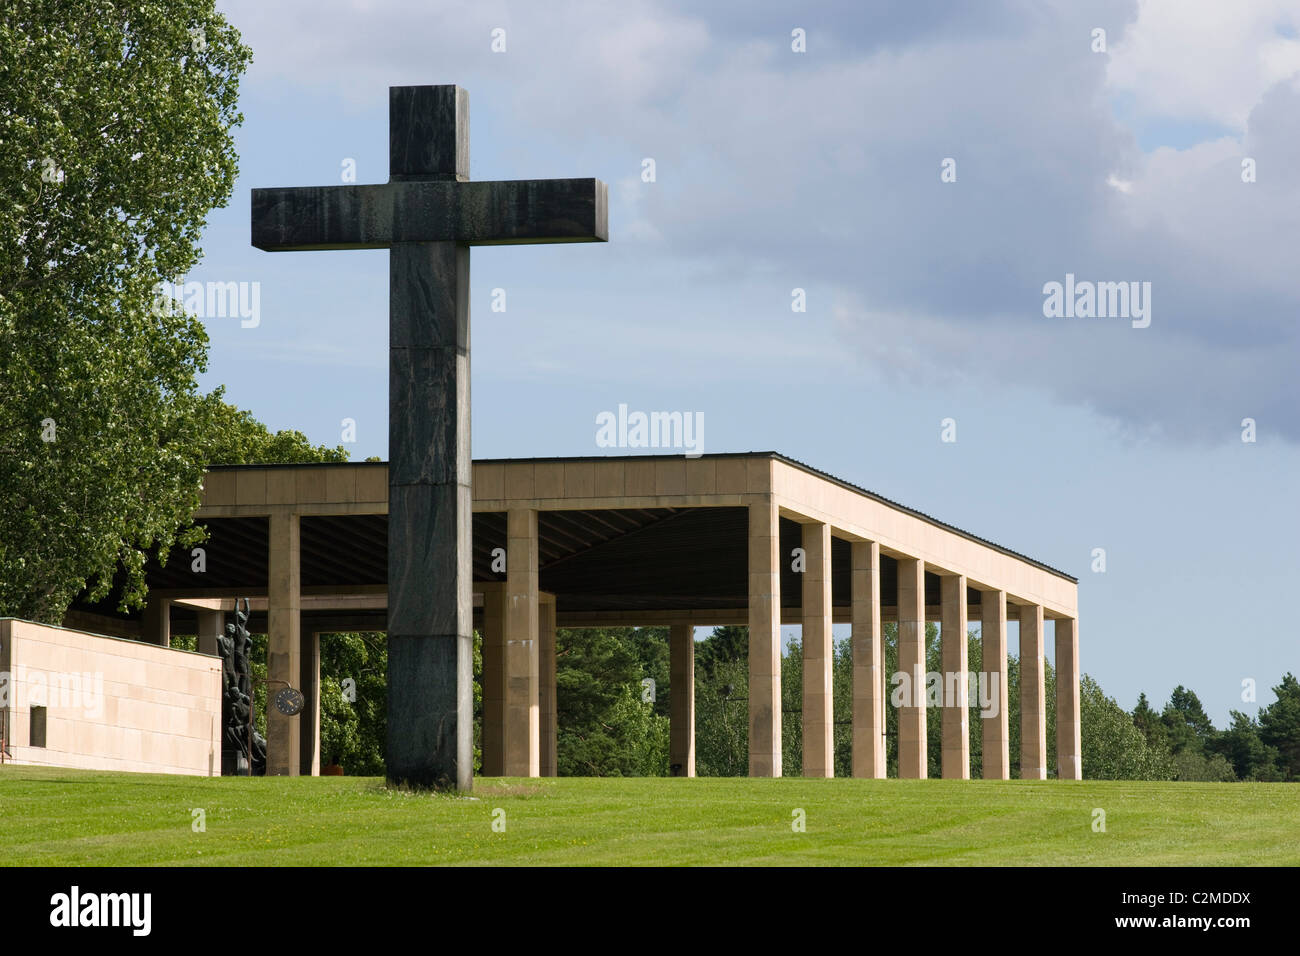 Chapel of the Holy Cross, The Woodland Crematorium, The Woodland Cemetery (Skogskyrkogarden), Stockholm. - Stock Image